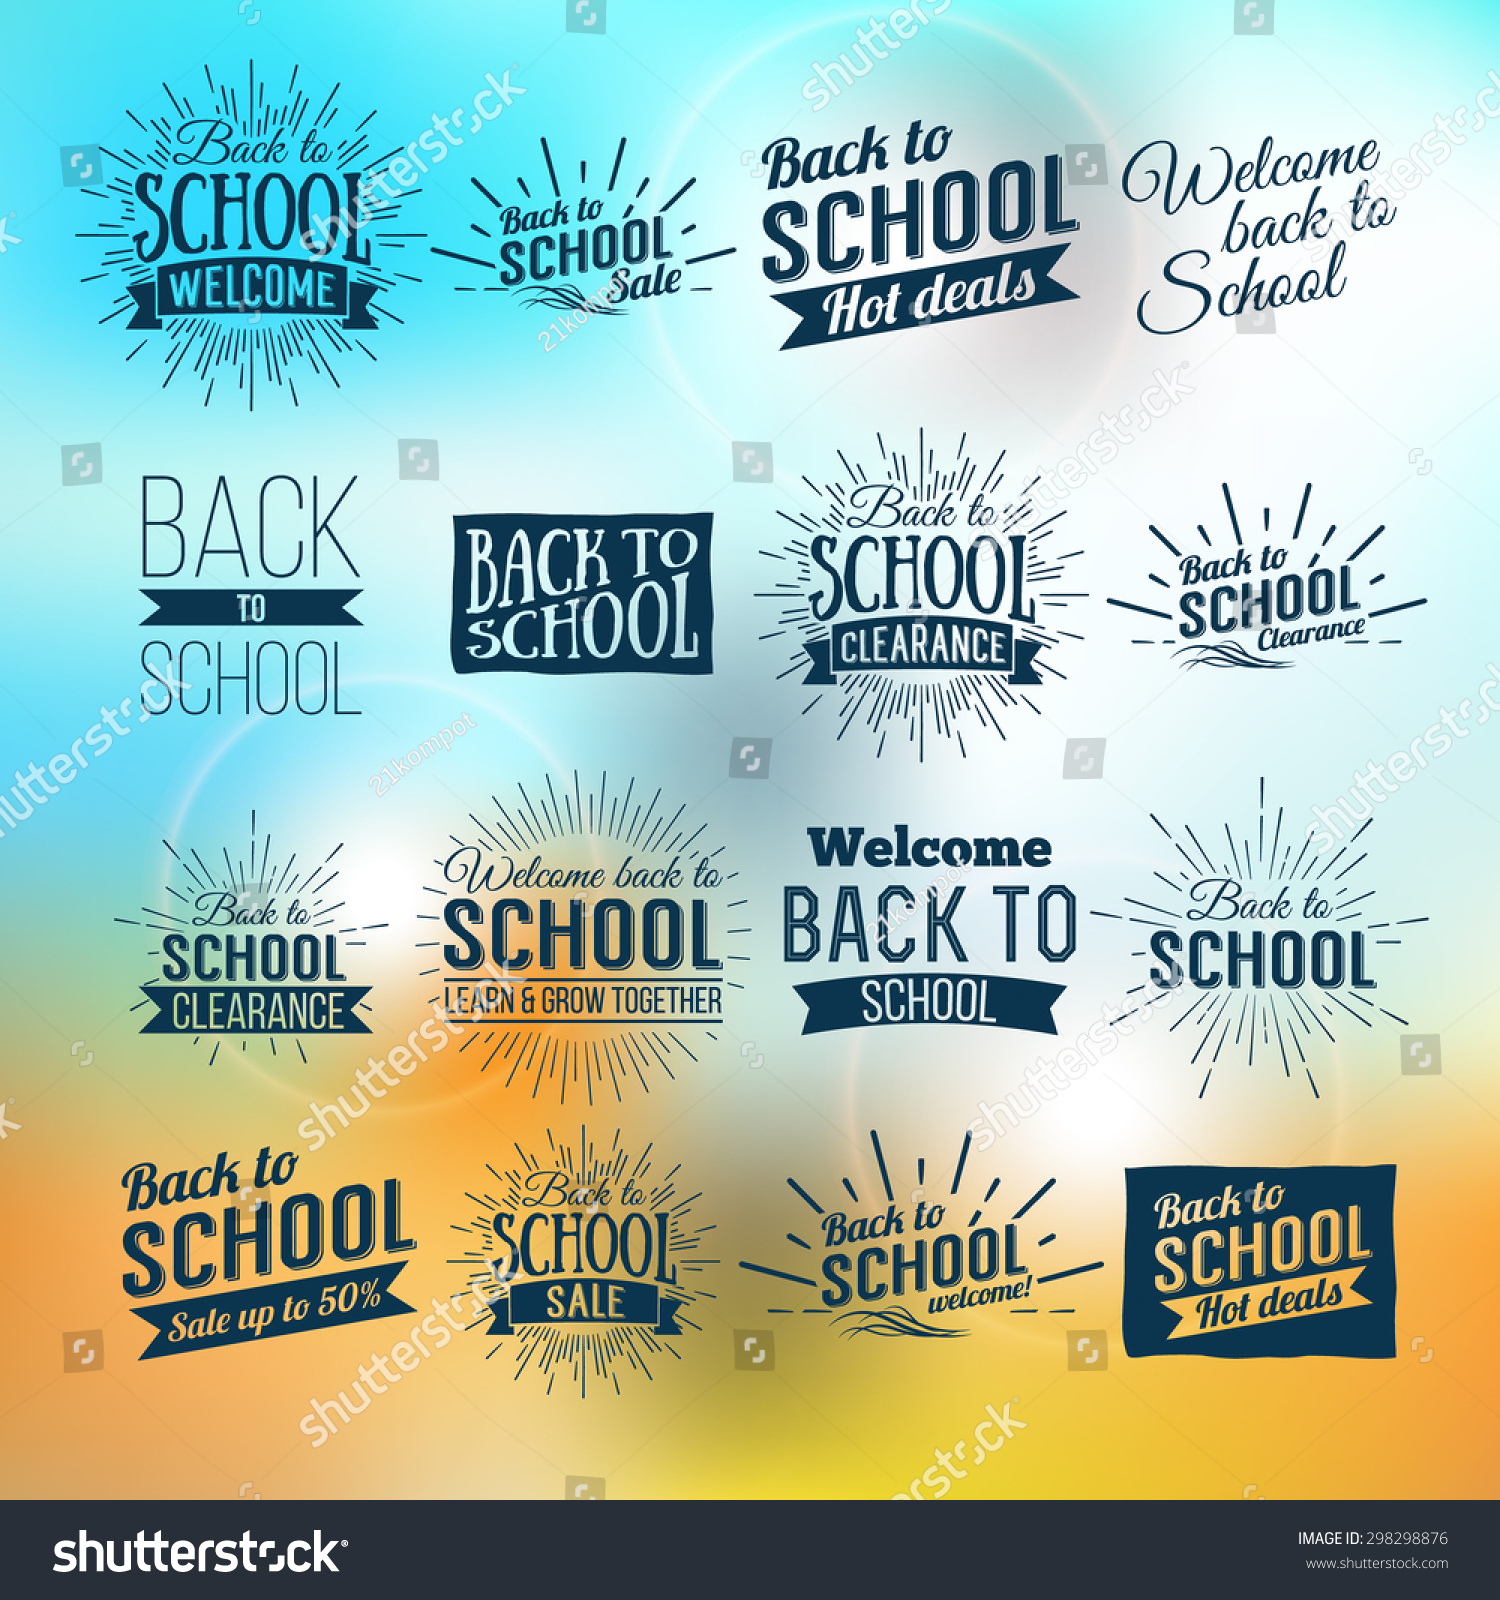 Back to School Typographic Vintage Style Back to School Hot Deals Design Layout In Vector Format